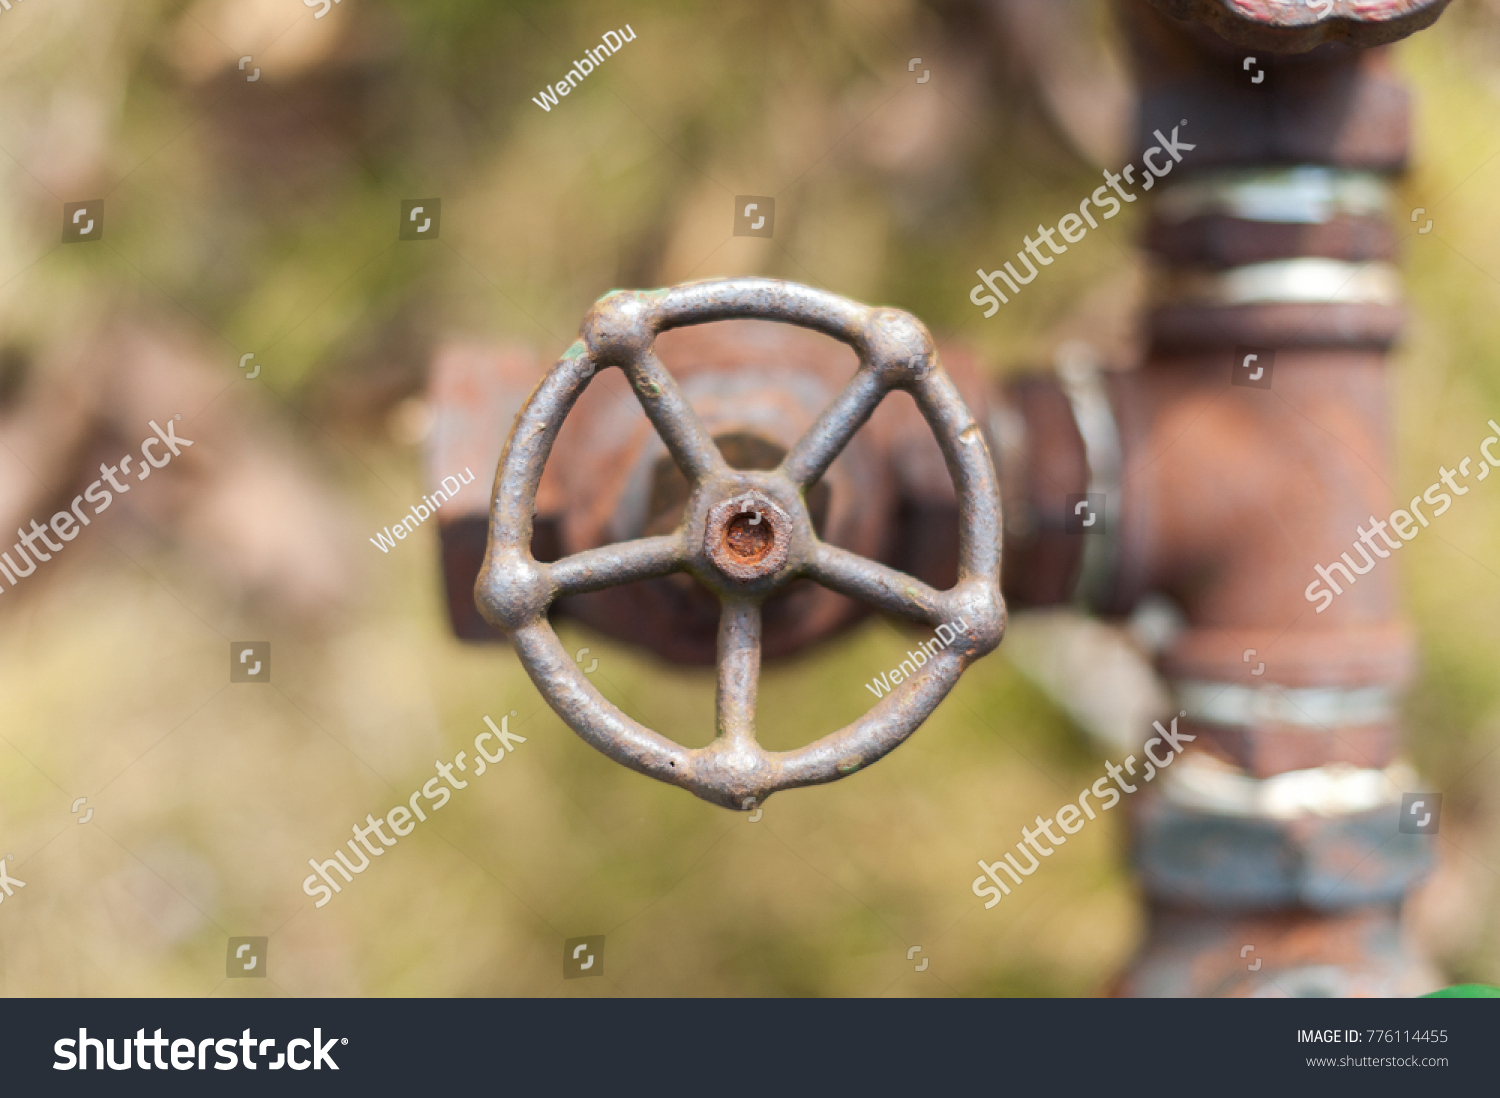 Old Rusty Water Faucet Stock Photo (Download Now) 776114455 ...